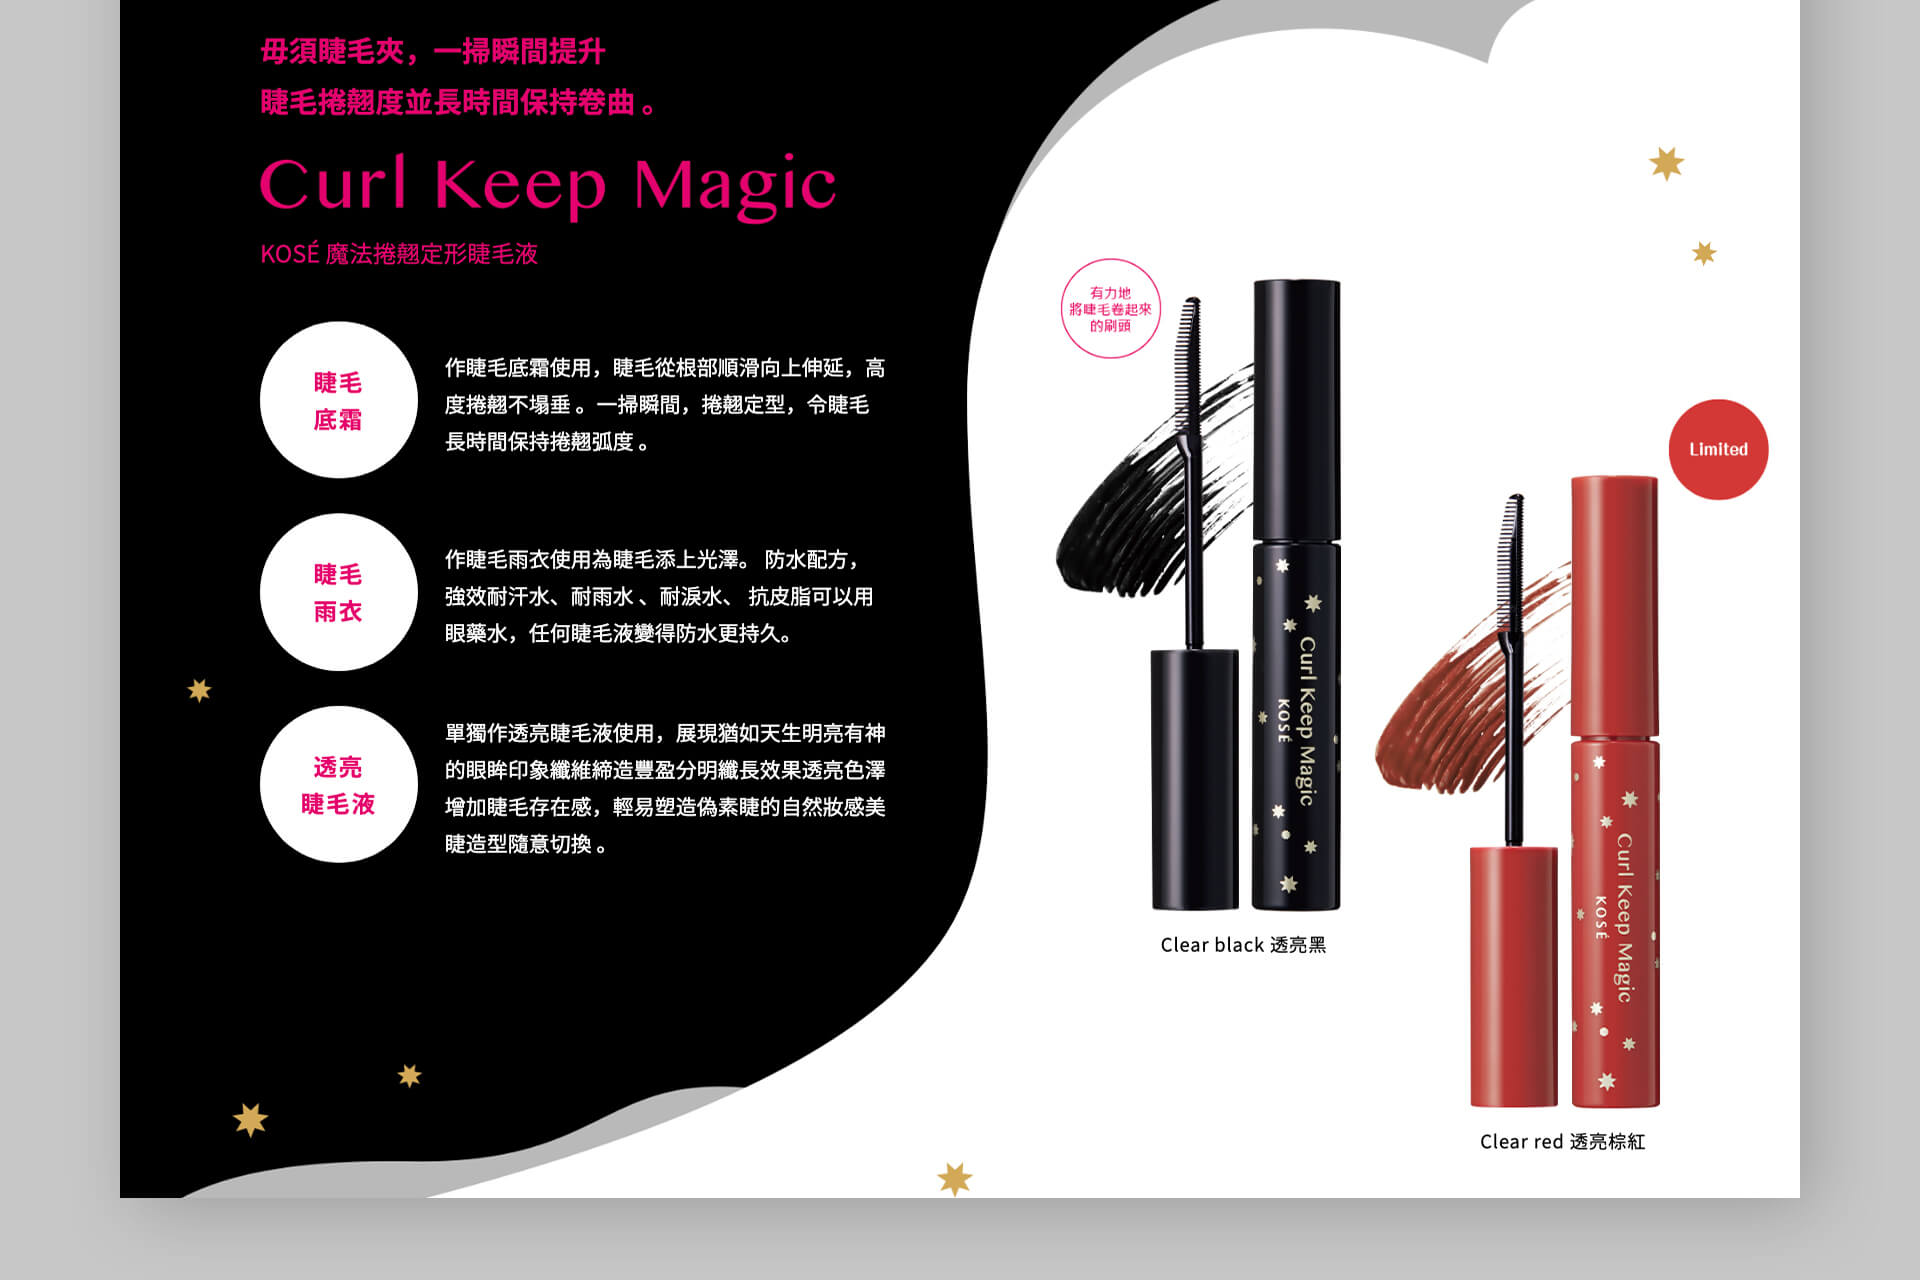 Kose - Curl Keep Magic